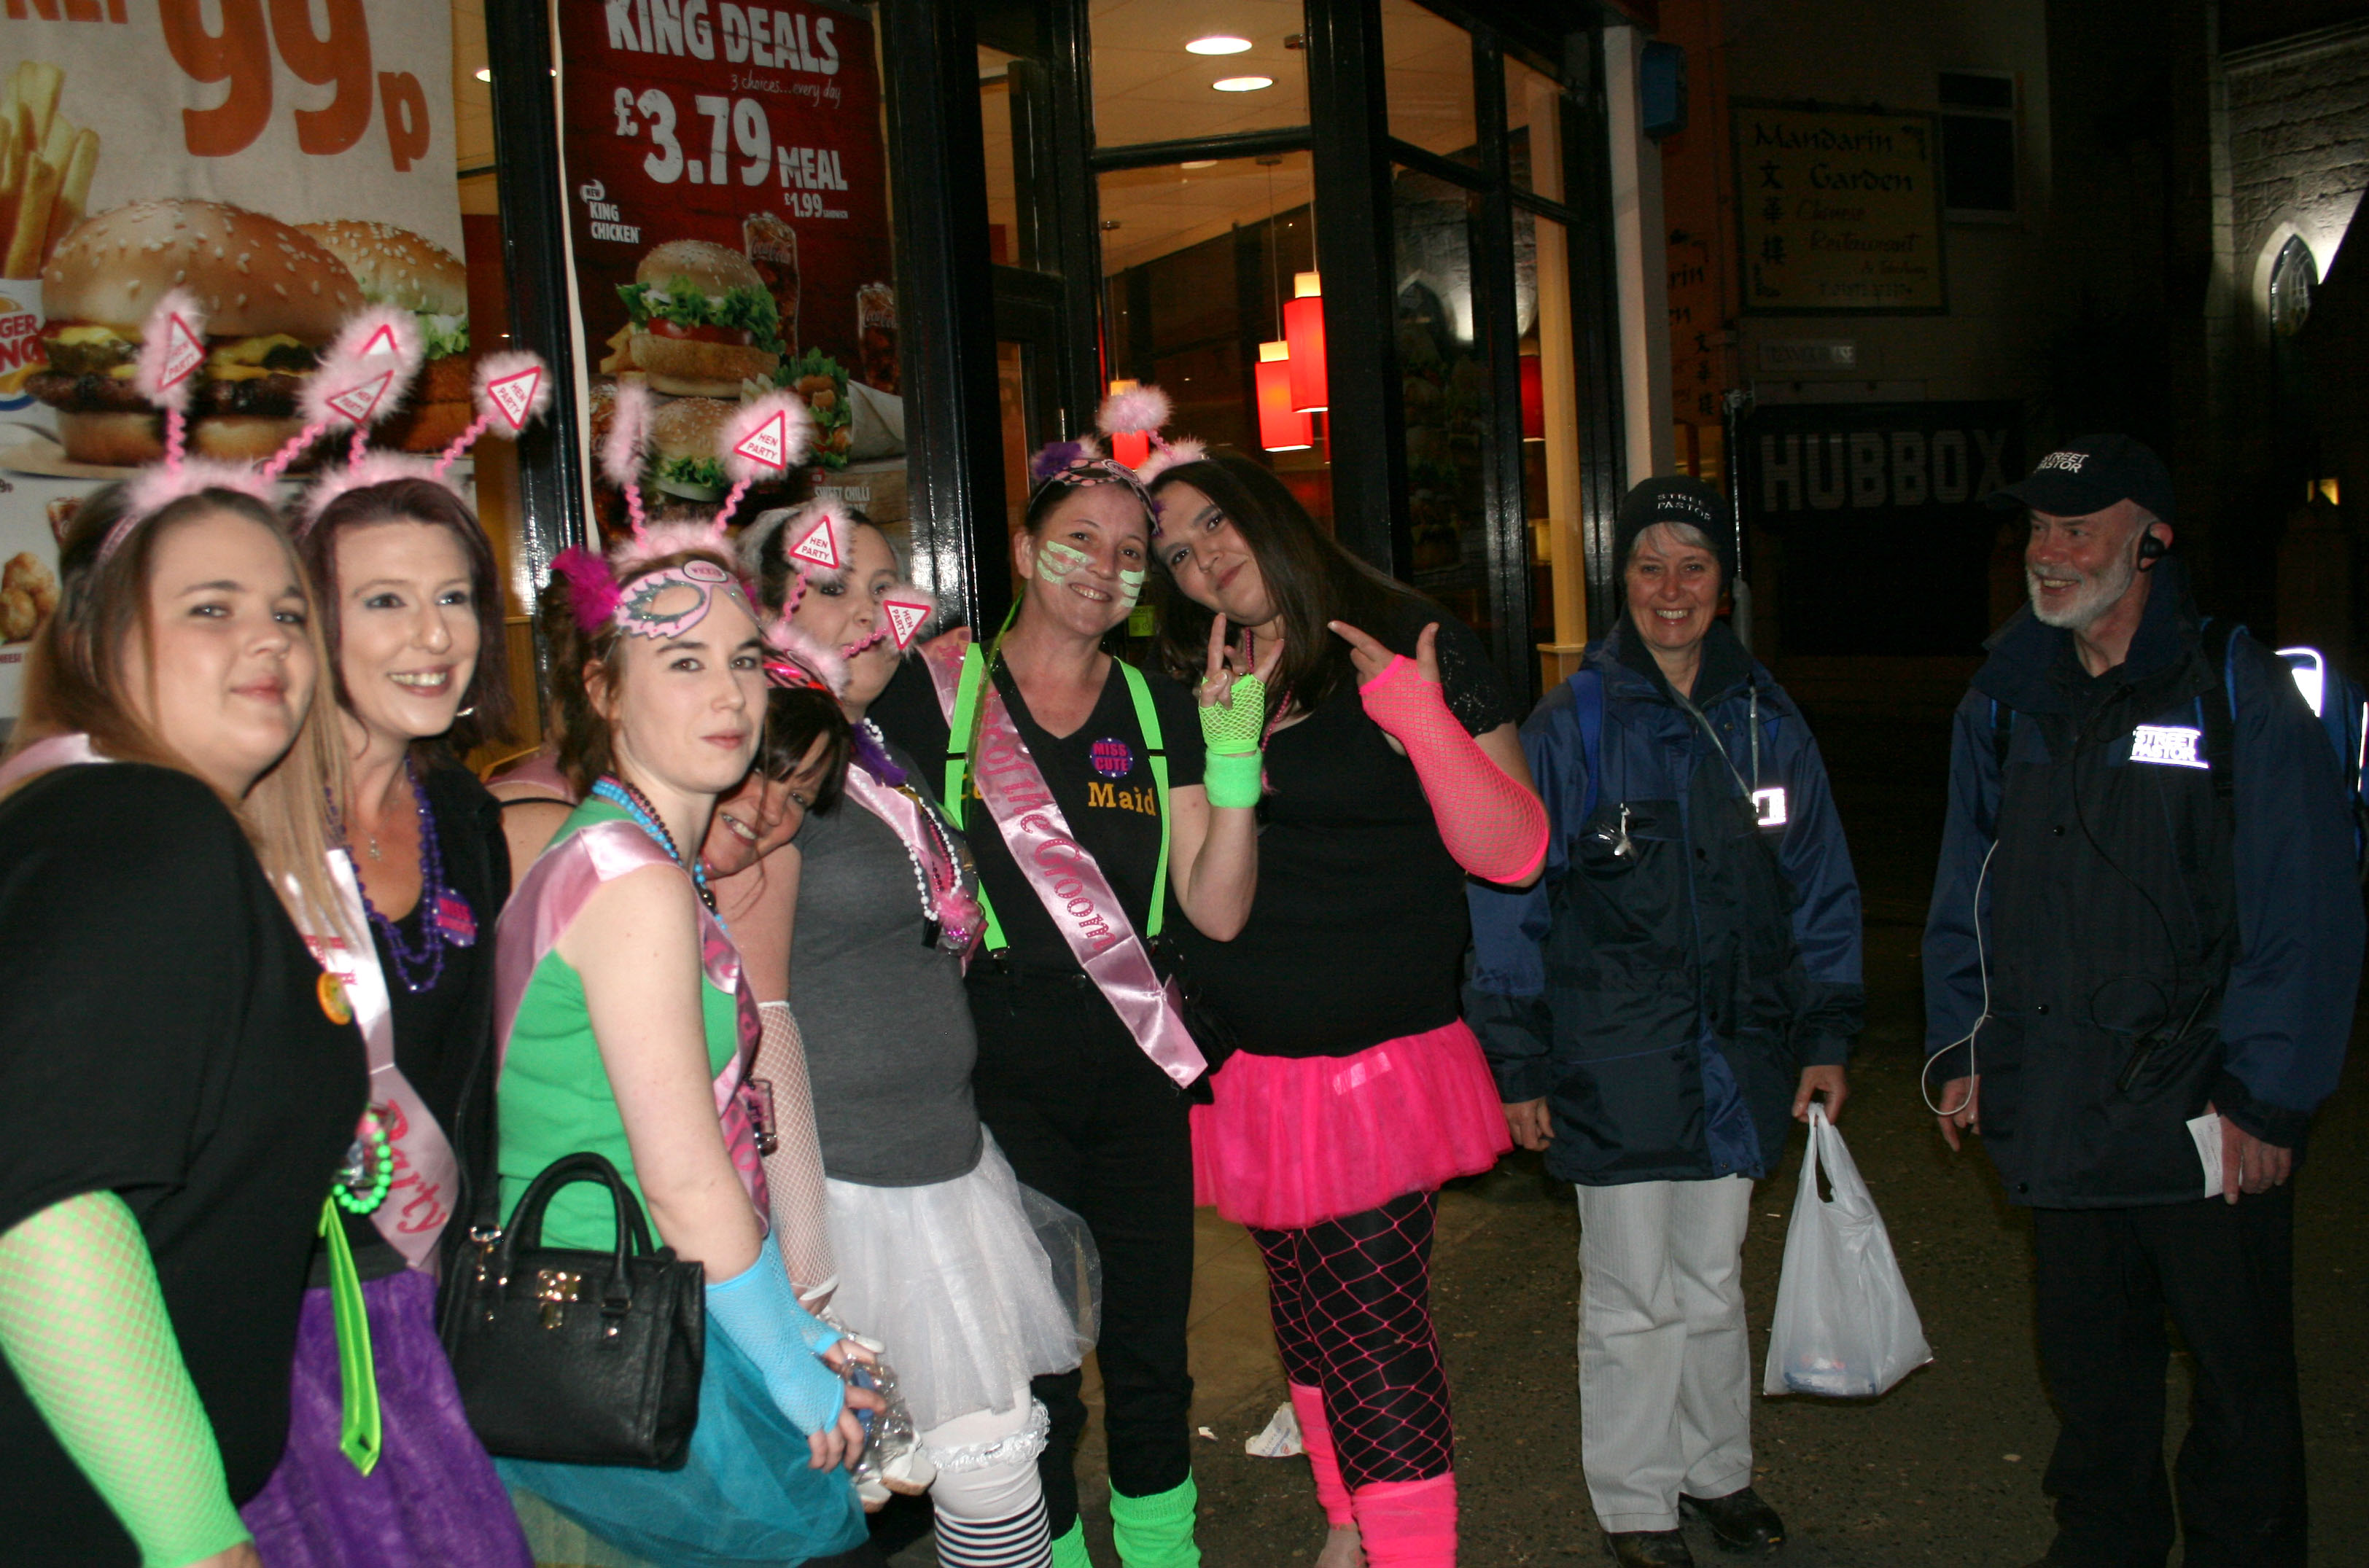 Happy Hen Party Group - May 2015